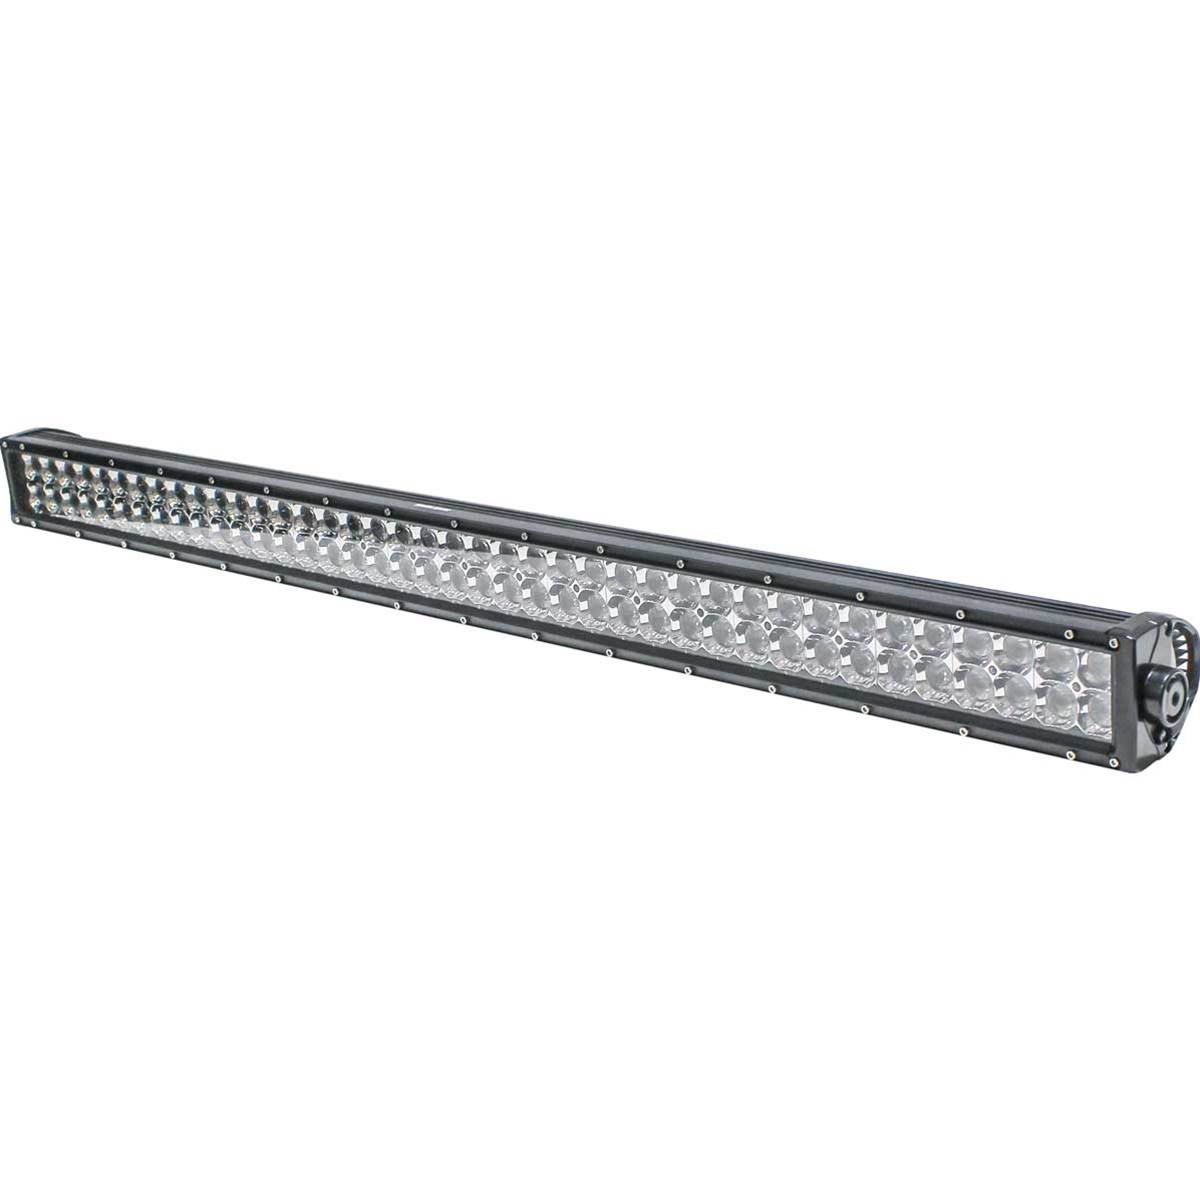 "KM LED 42"" Double Row Light Bar"